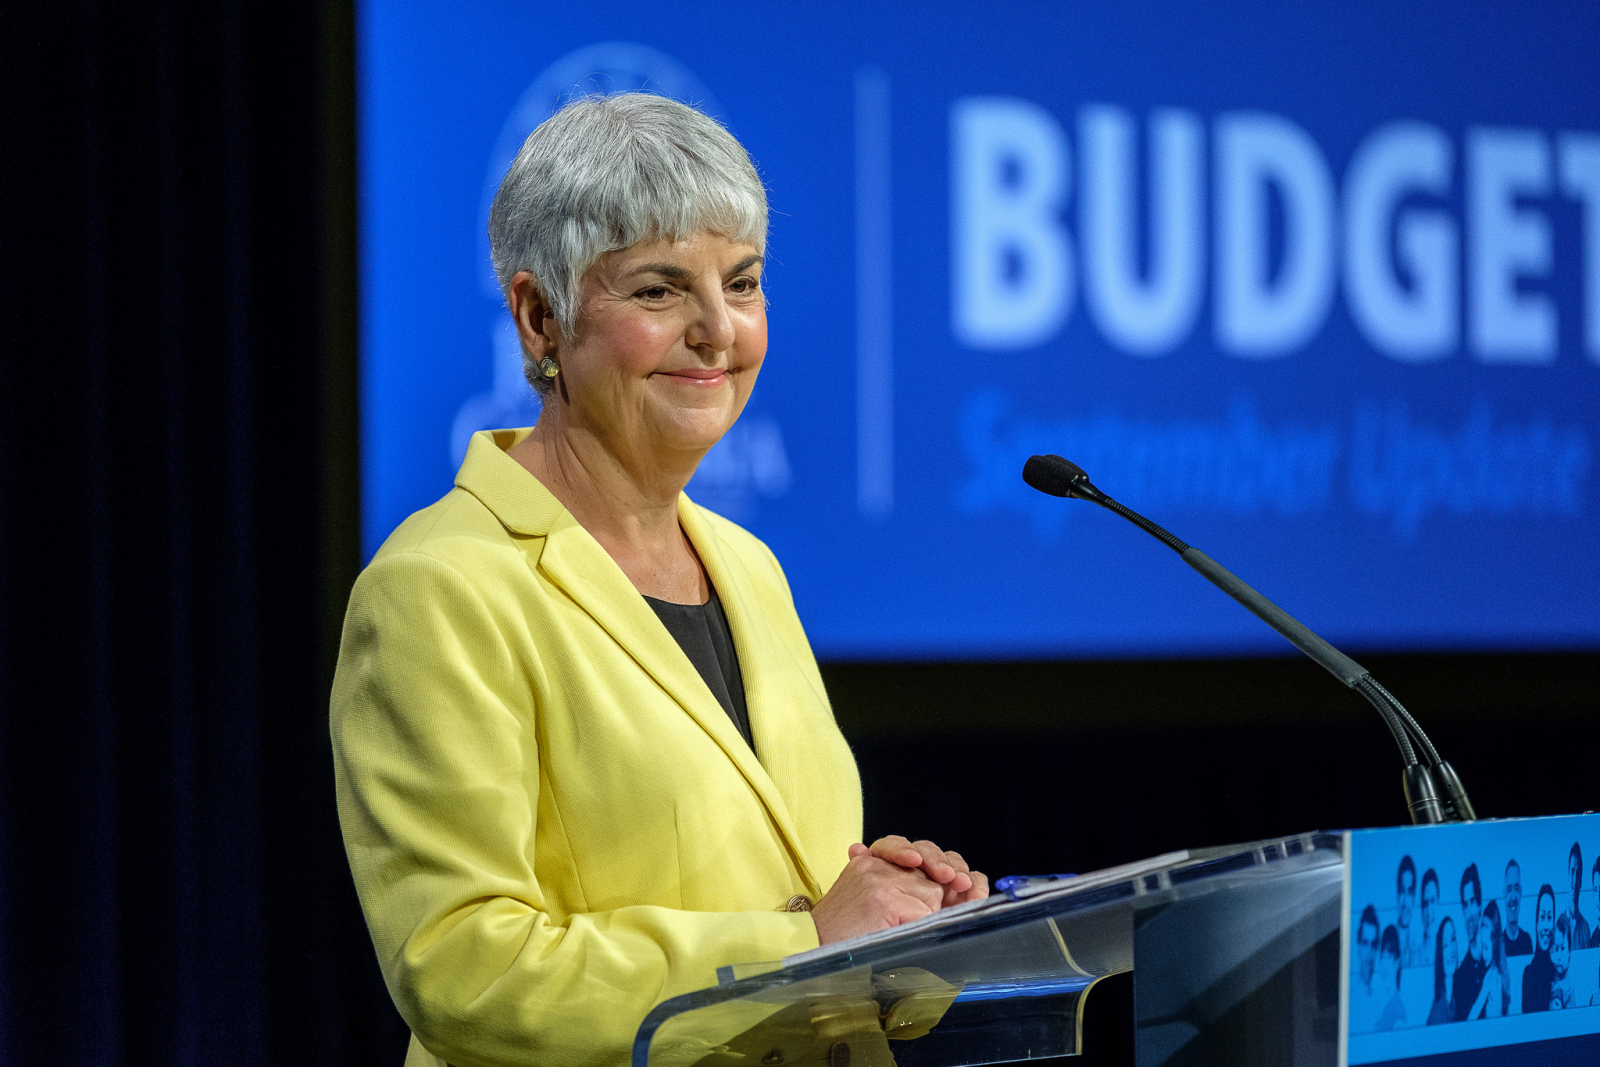 Carole James is B.C.'s finance minister.